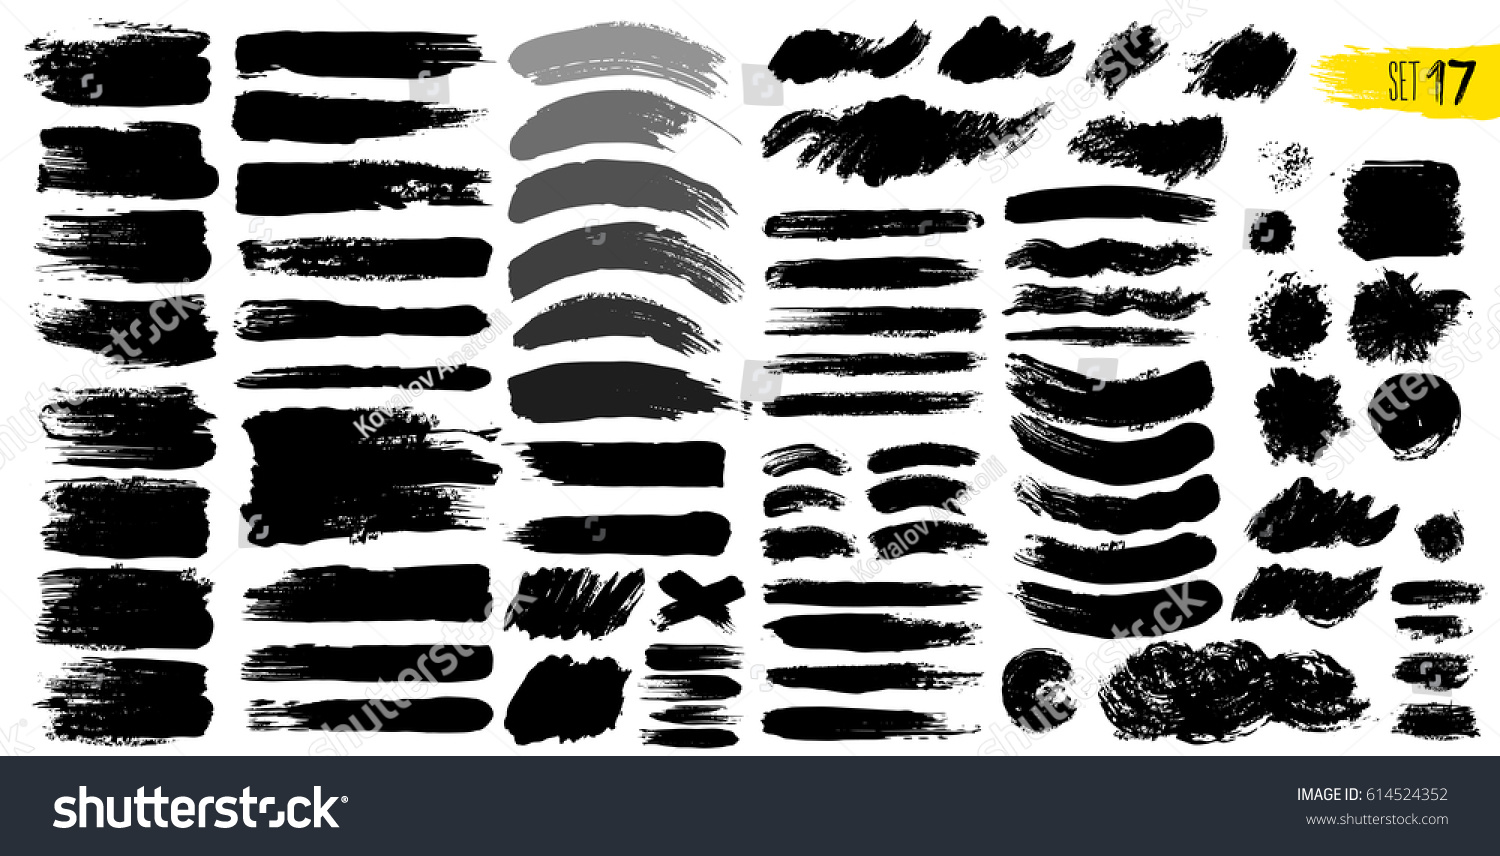 Big collection of black paint, ink brush strokes, brushes, lines. Dirty artistic design elements, boxes, frames. Vector illustration. Isolated on white background. Freehand drawing. #614524352